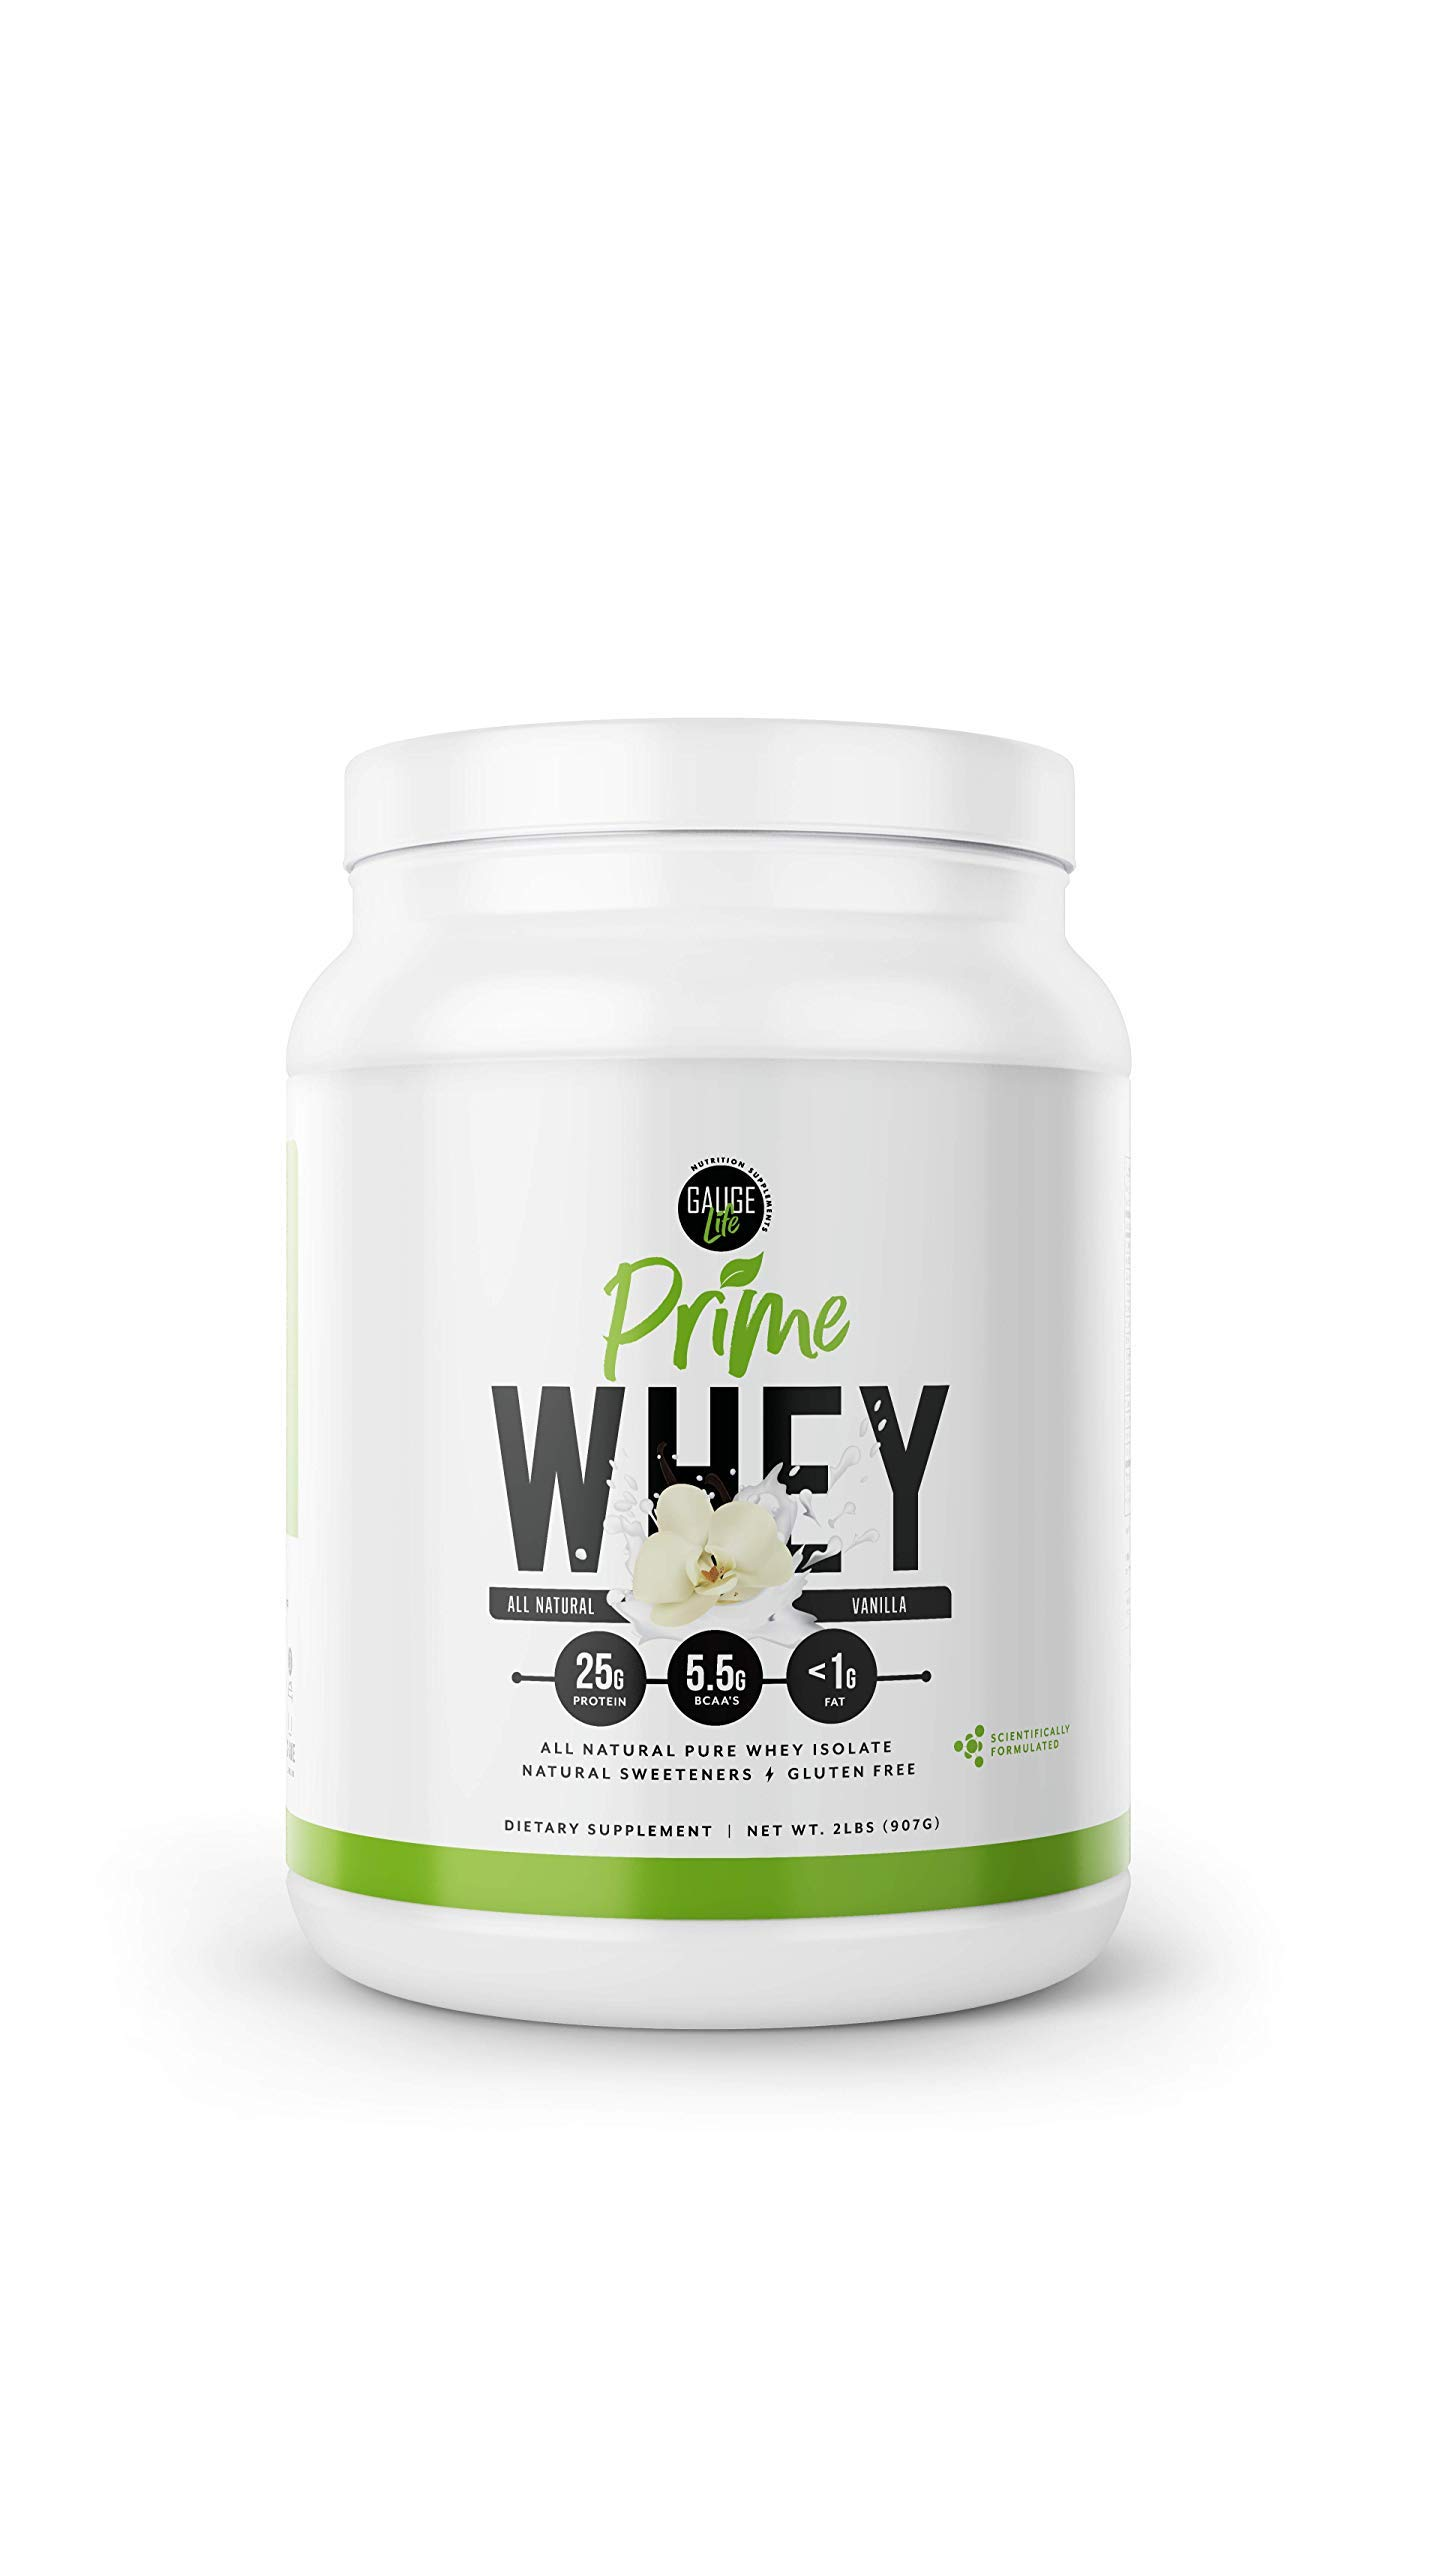 Gauge Life Prime Whey Isolate Vanilla Protein Powder from Pasture Raised Cows- Low Carb, Low Calorie, Non-GMO, Gluten Free, Soy Free. Great for Weight Loss & Bodybuilding, 32 Servings by Gauge Life Nutrition Supplements